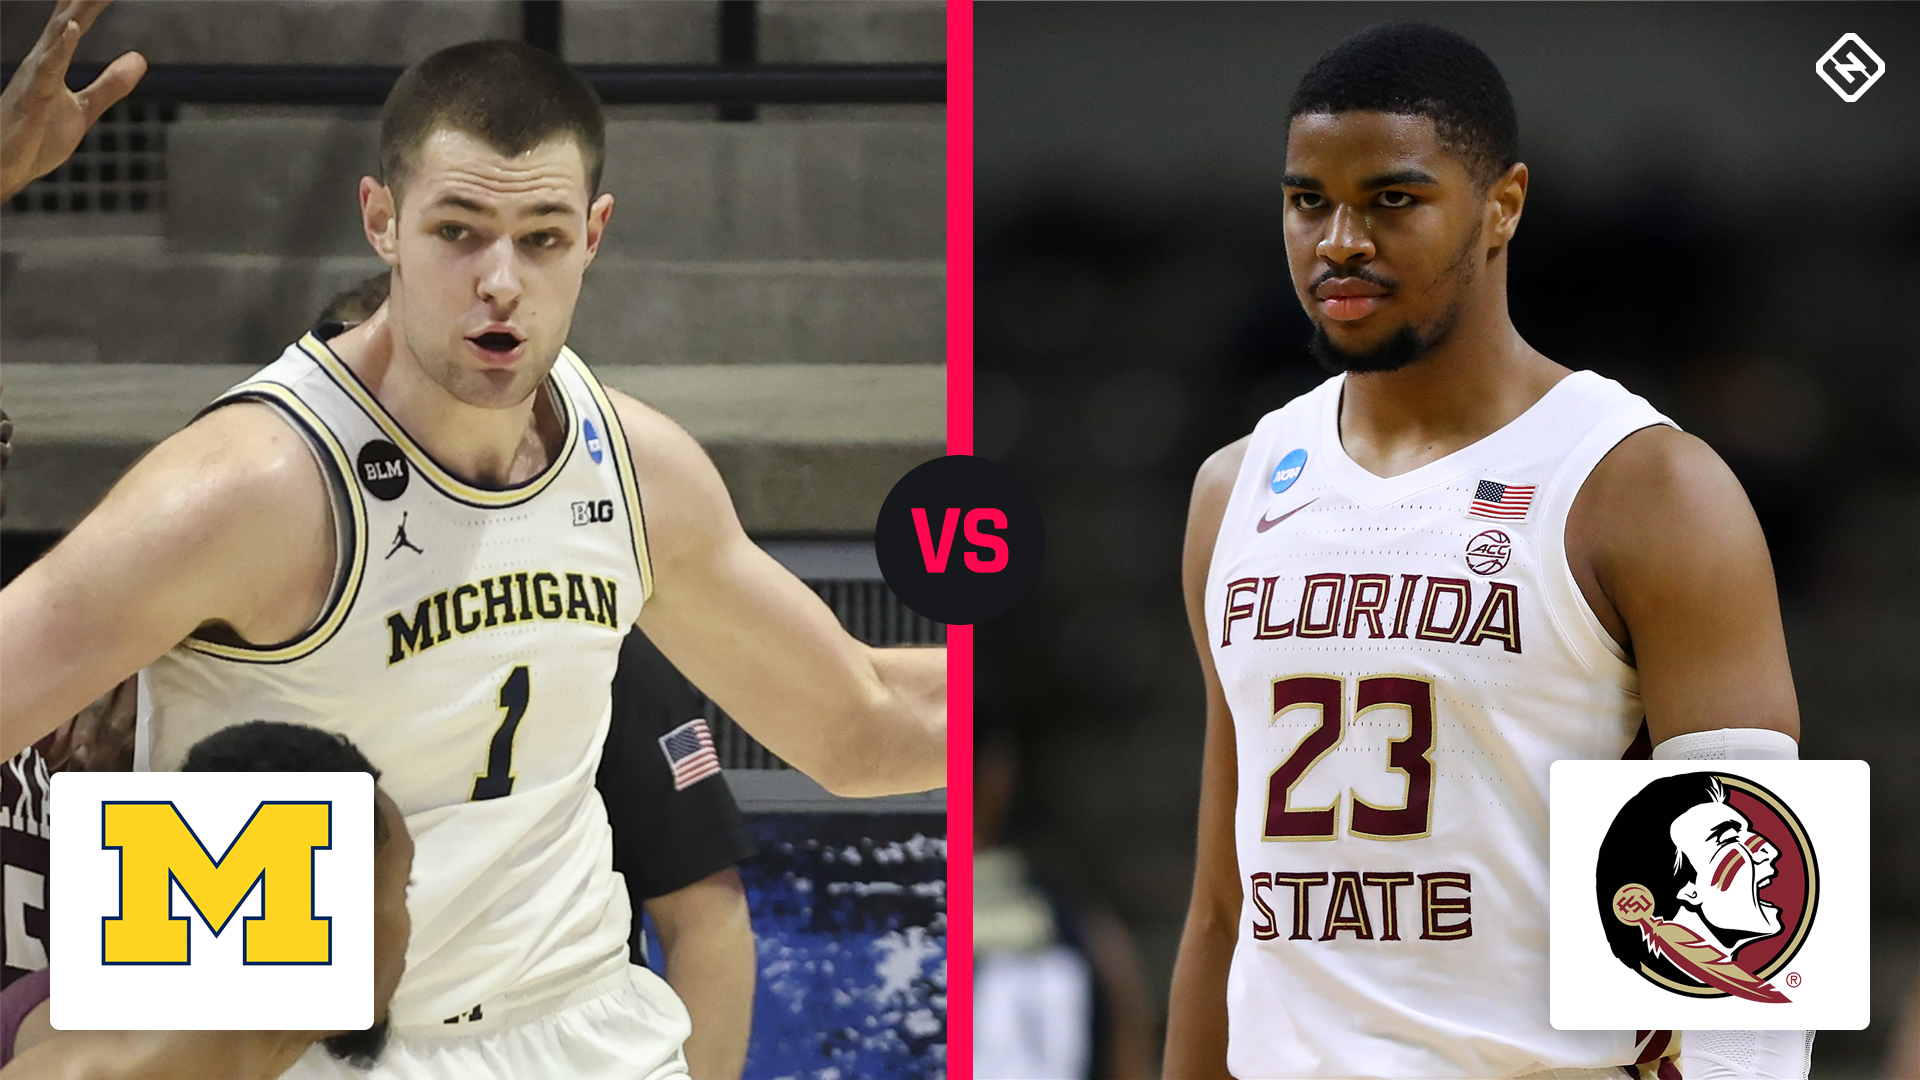 Michigan vs Florida State tests, options, predictions for the March 16 Sweet Madness game